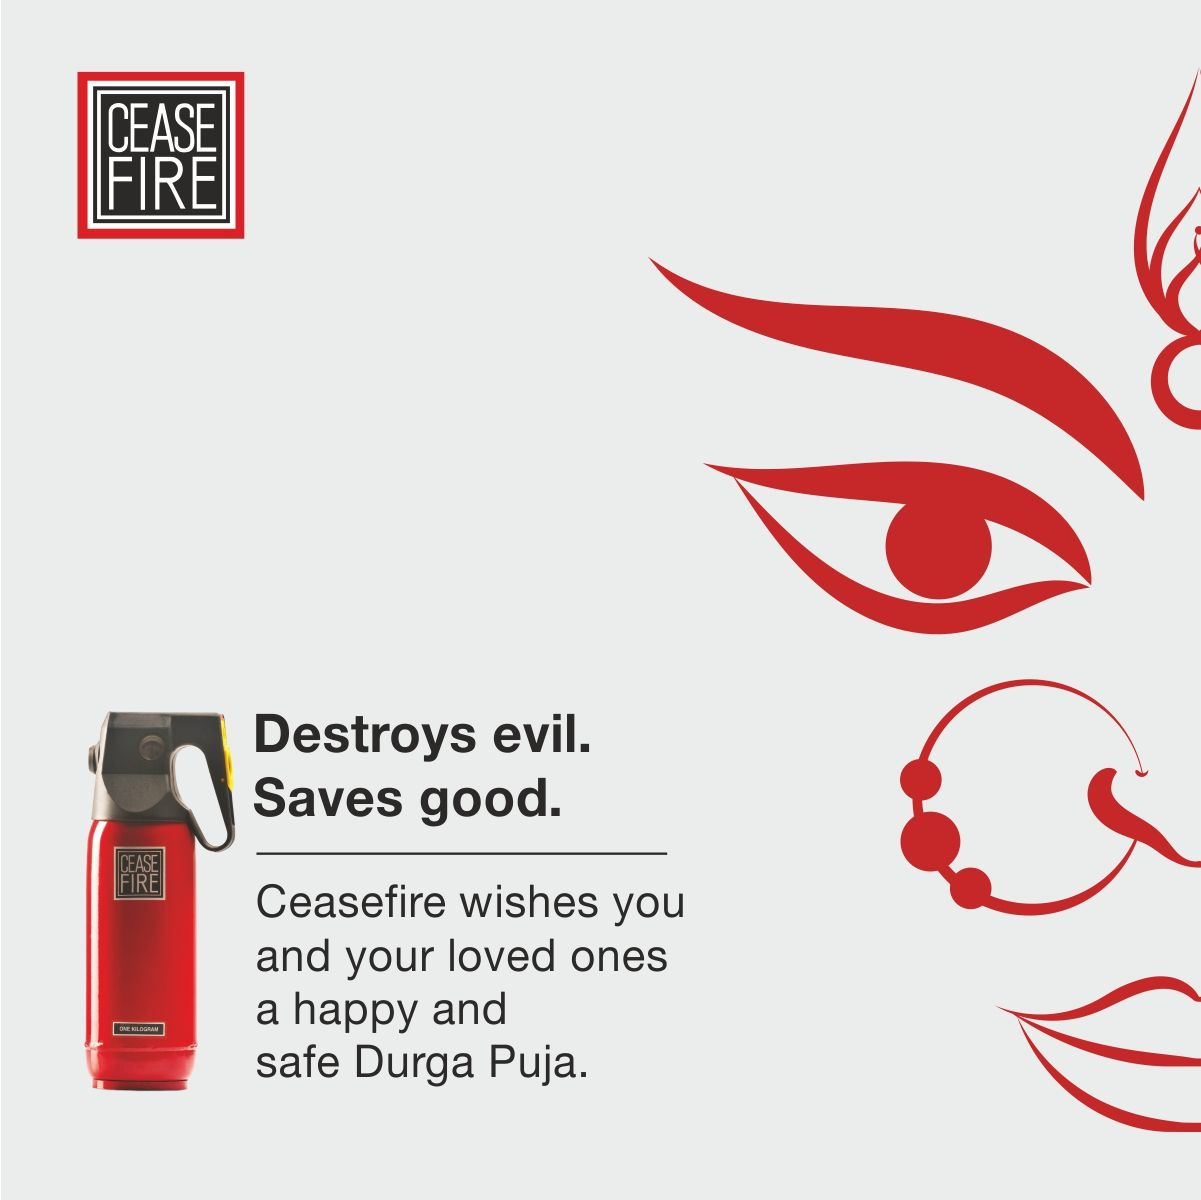 Pin by ceasefire industries pvt ltd on fire safety